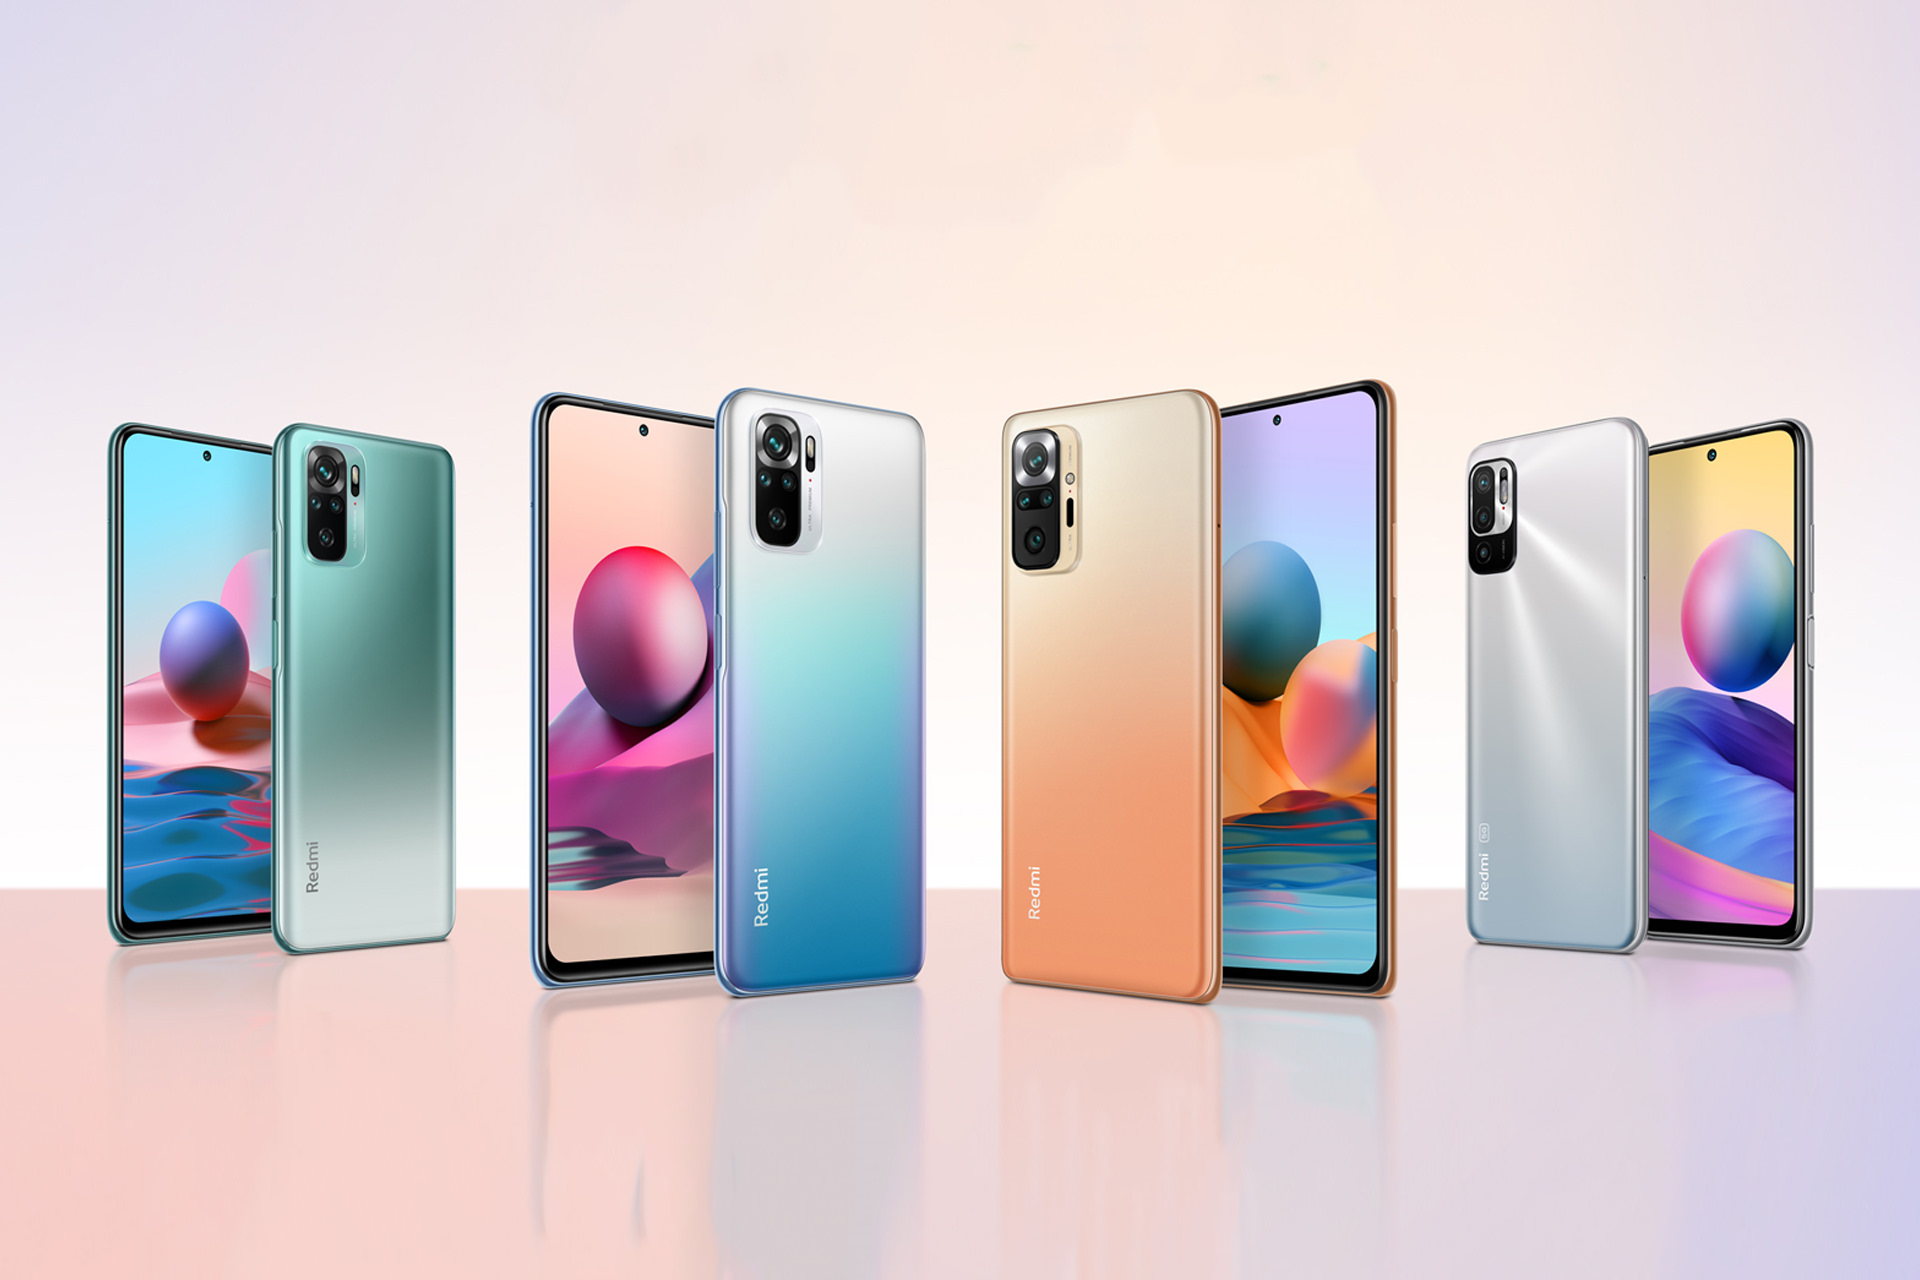 xiaomi redmi note 10 series smartphone all models front back render